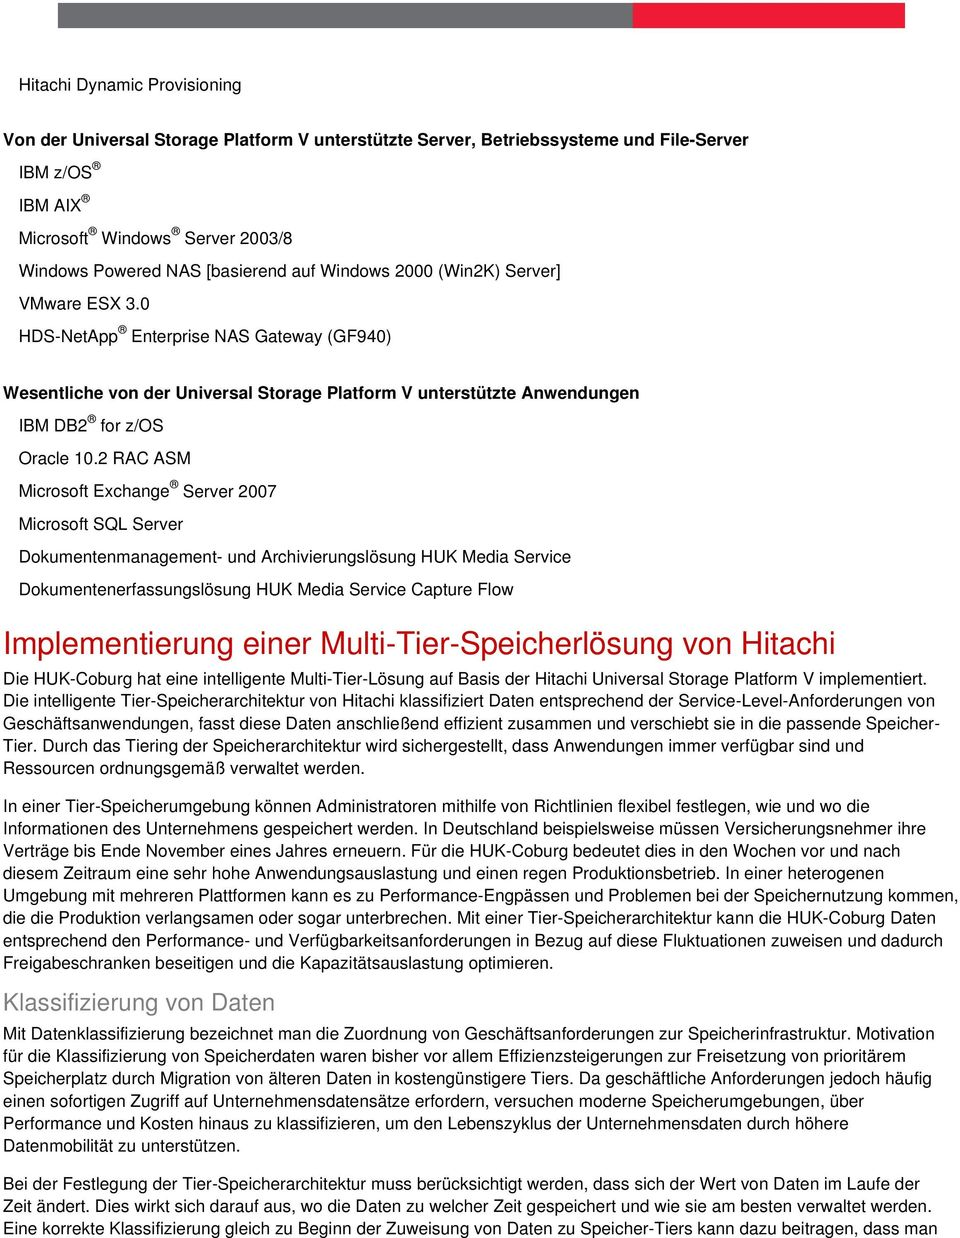 2 RAC ASM Microsoft Exchange Server 2007 Microsoft SQL Server Dokumentenmanagement- und Archivierungslösung HUK Media Service Dokumentenerfassungslösung HUK Media Service Capture Flow Implementierung